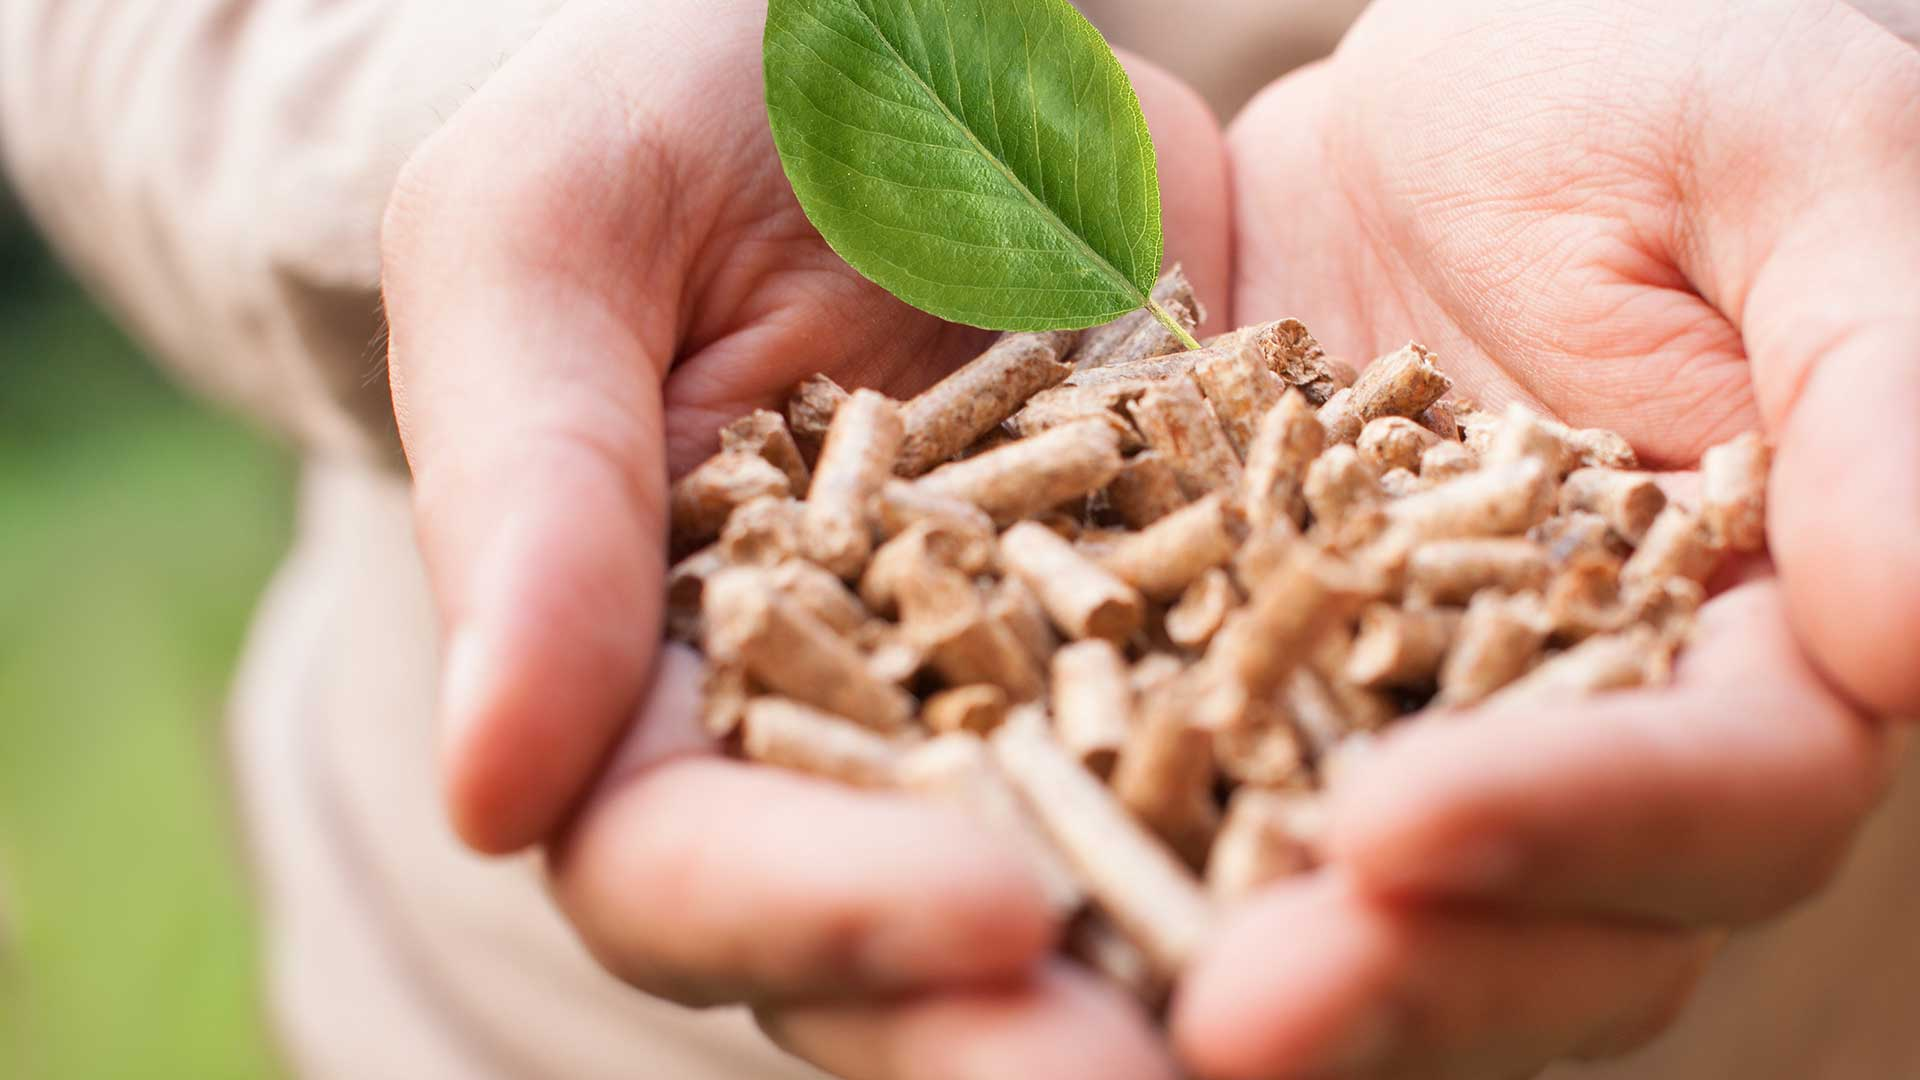 A pair of hands holding wood pellets